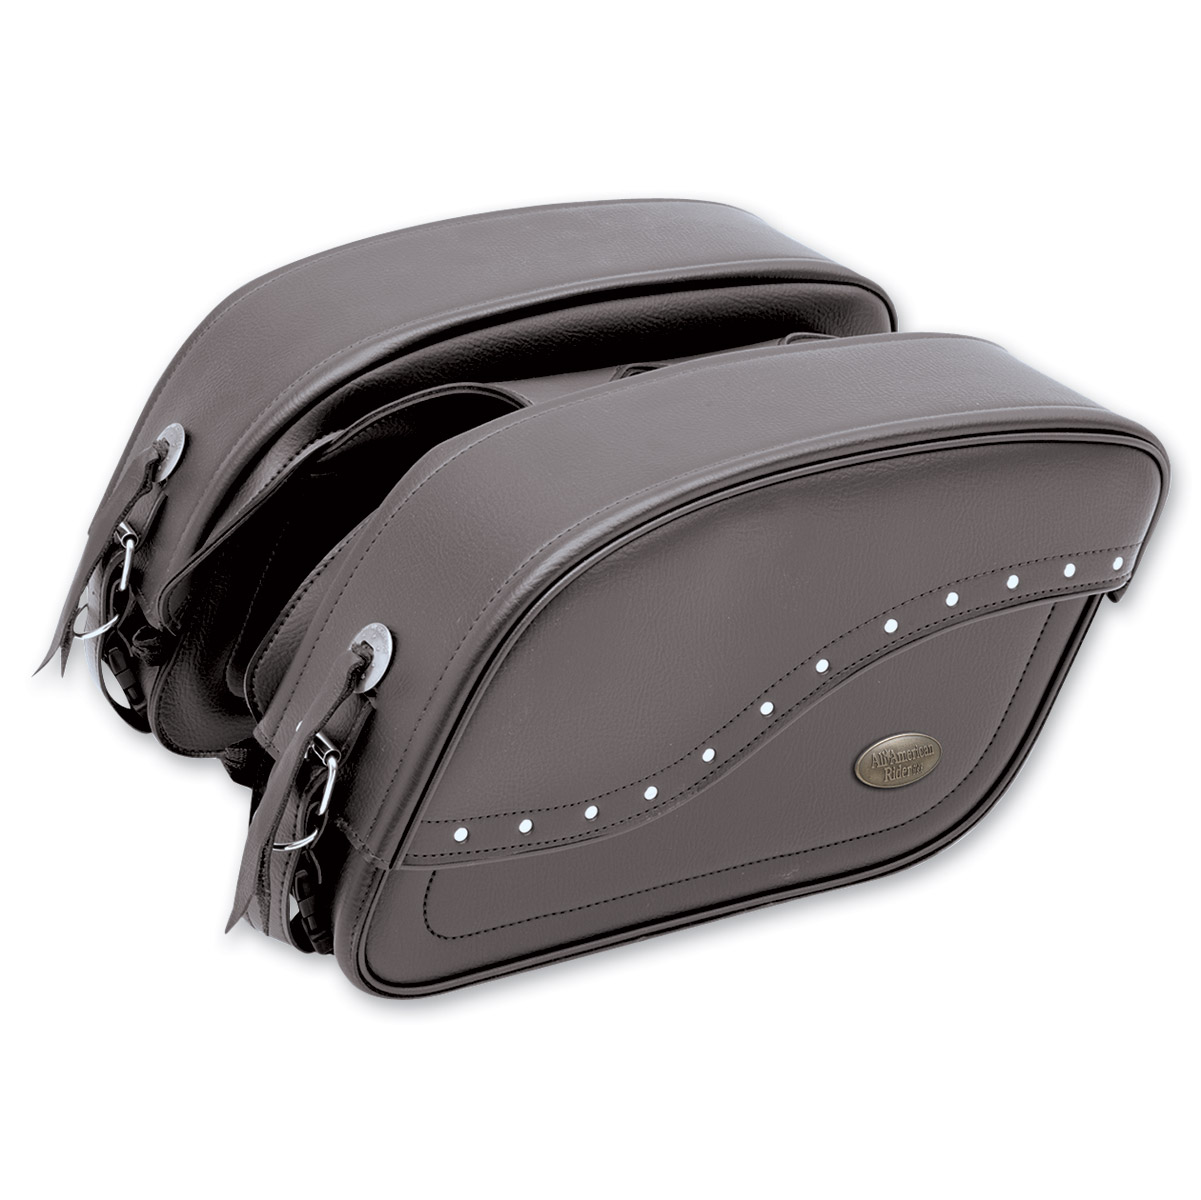 All American Rider Flap-Over Futura 2000 Saddlebag